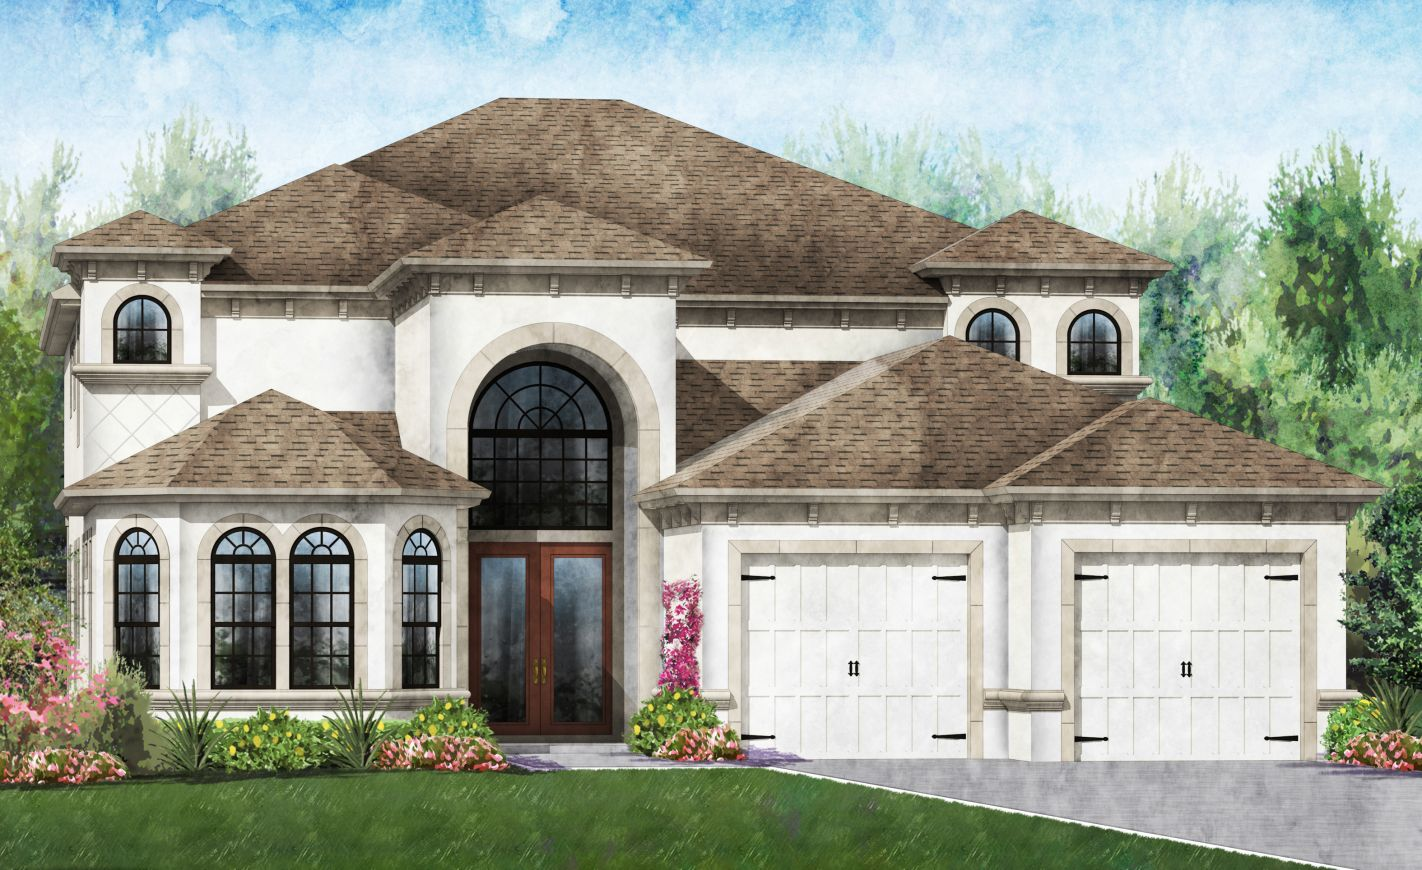 M-large Ici Homes Florida Floor Plans Egret Vi on